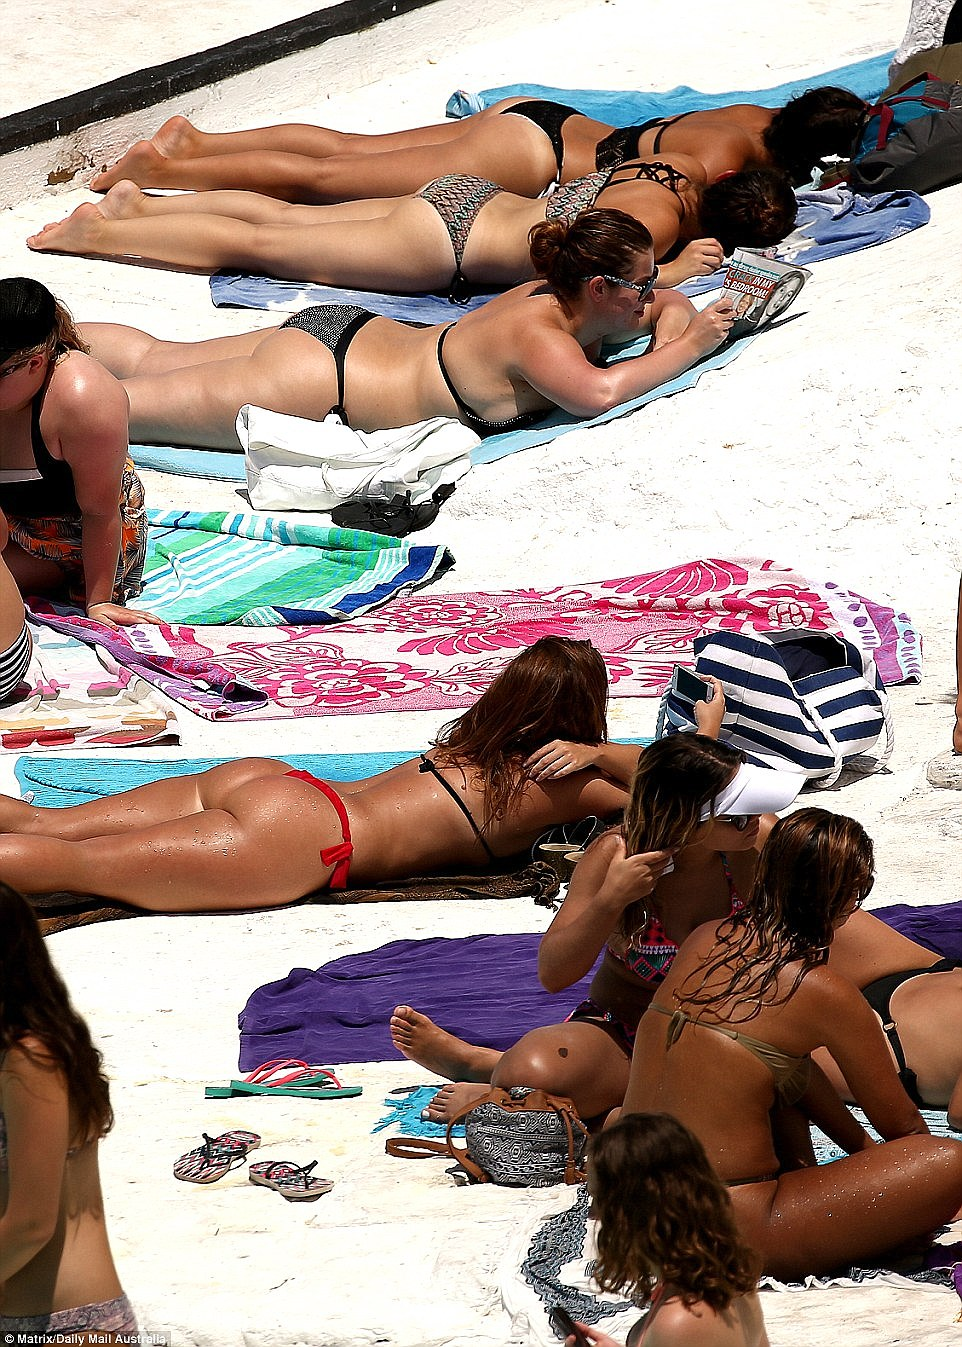 3b48533800000578-4023054-every_weekend_for_the_start_of_summer_bondi_beach_in_sydney_s_ea-a-8_1481500605773